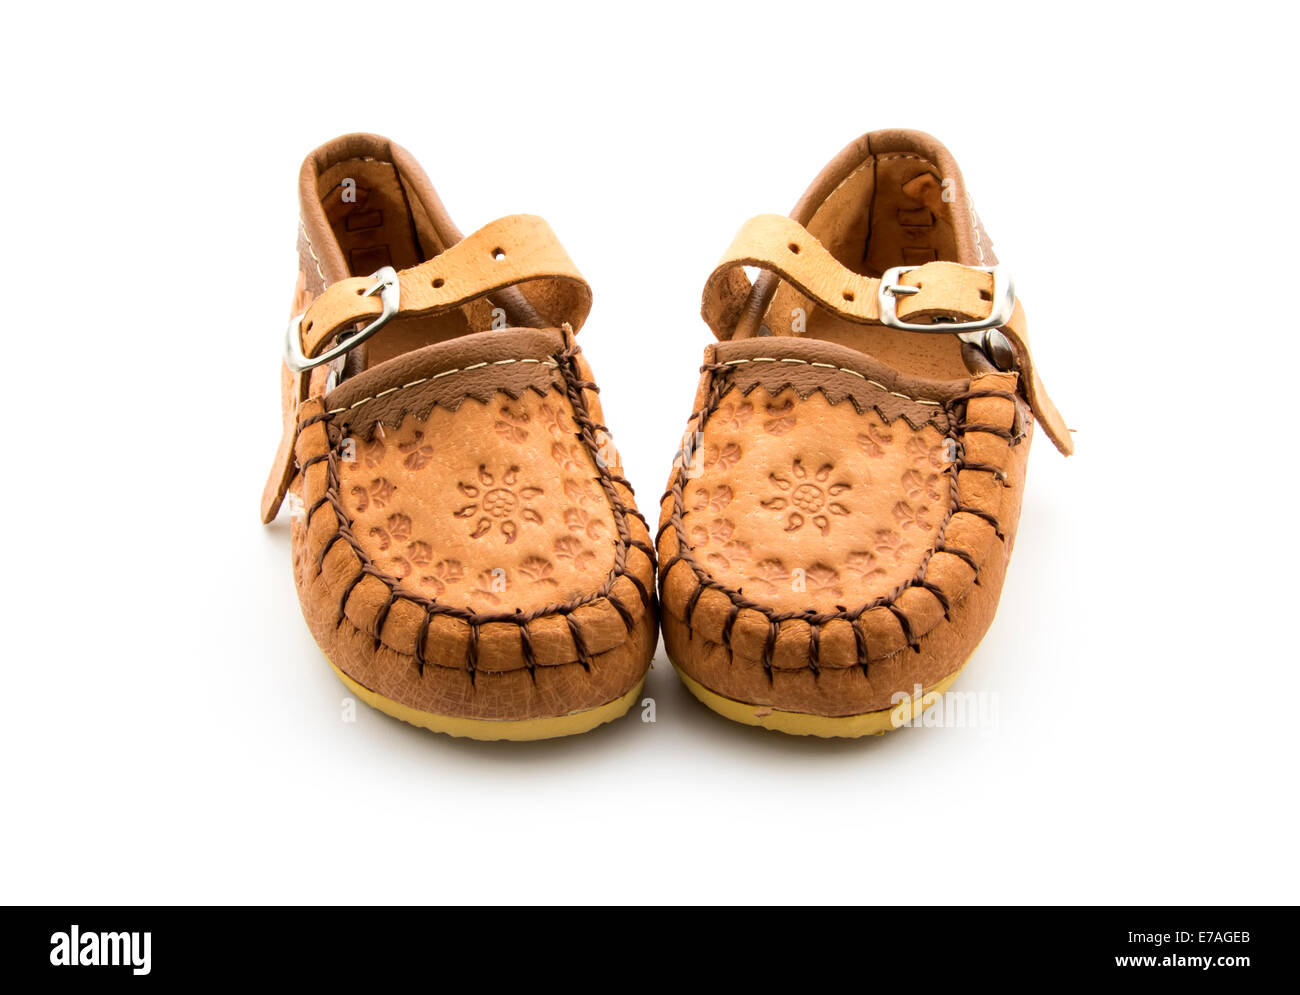 d1fcb798aecb hand made traditional shoes for little girl isolated on white - Stock Image